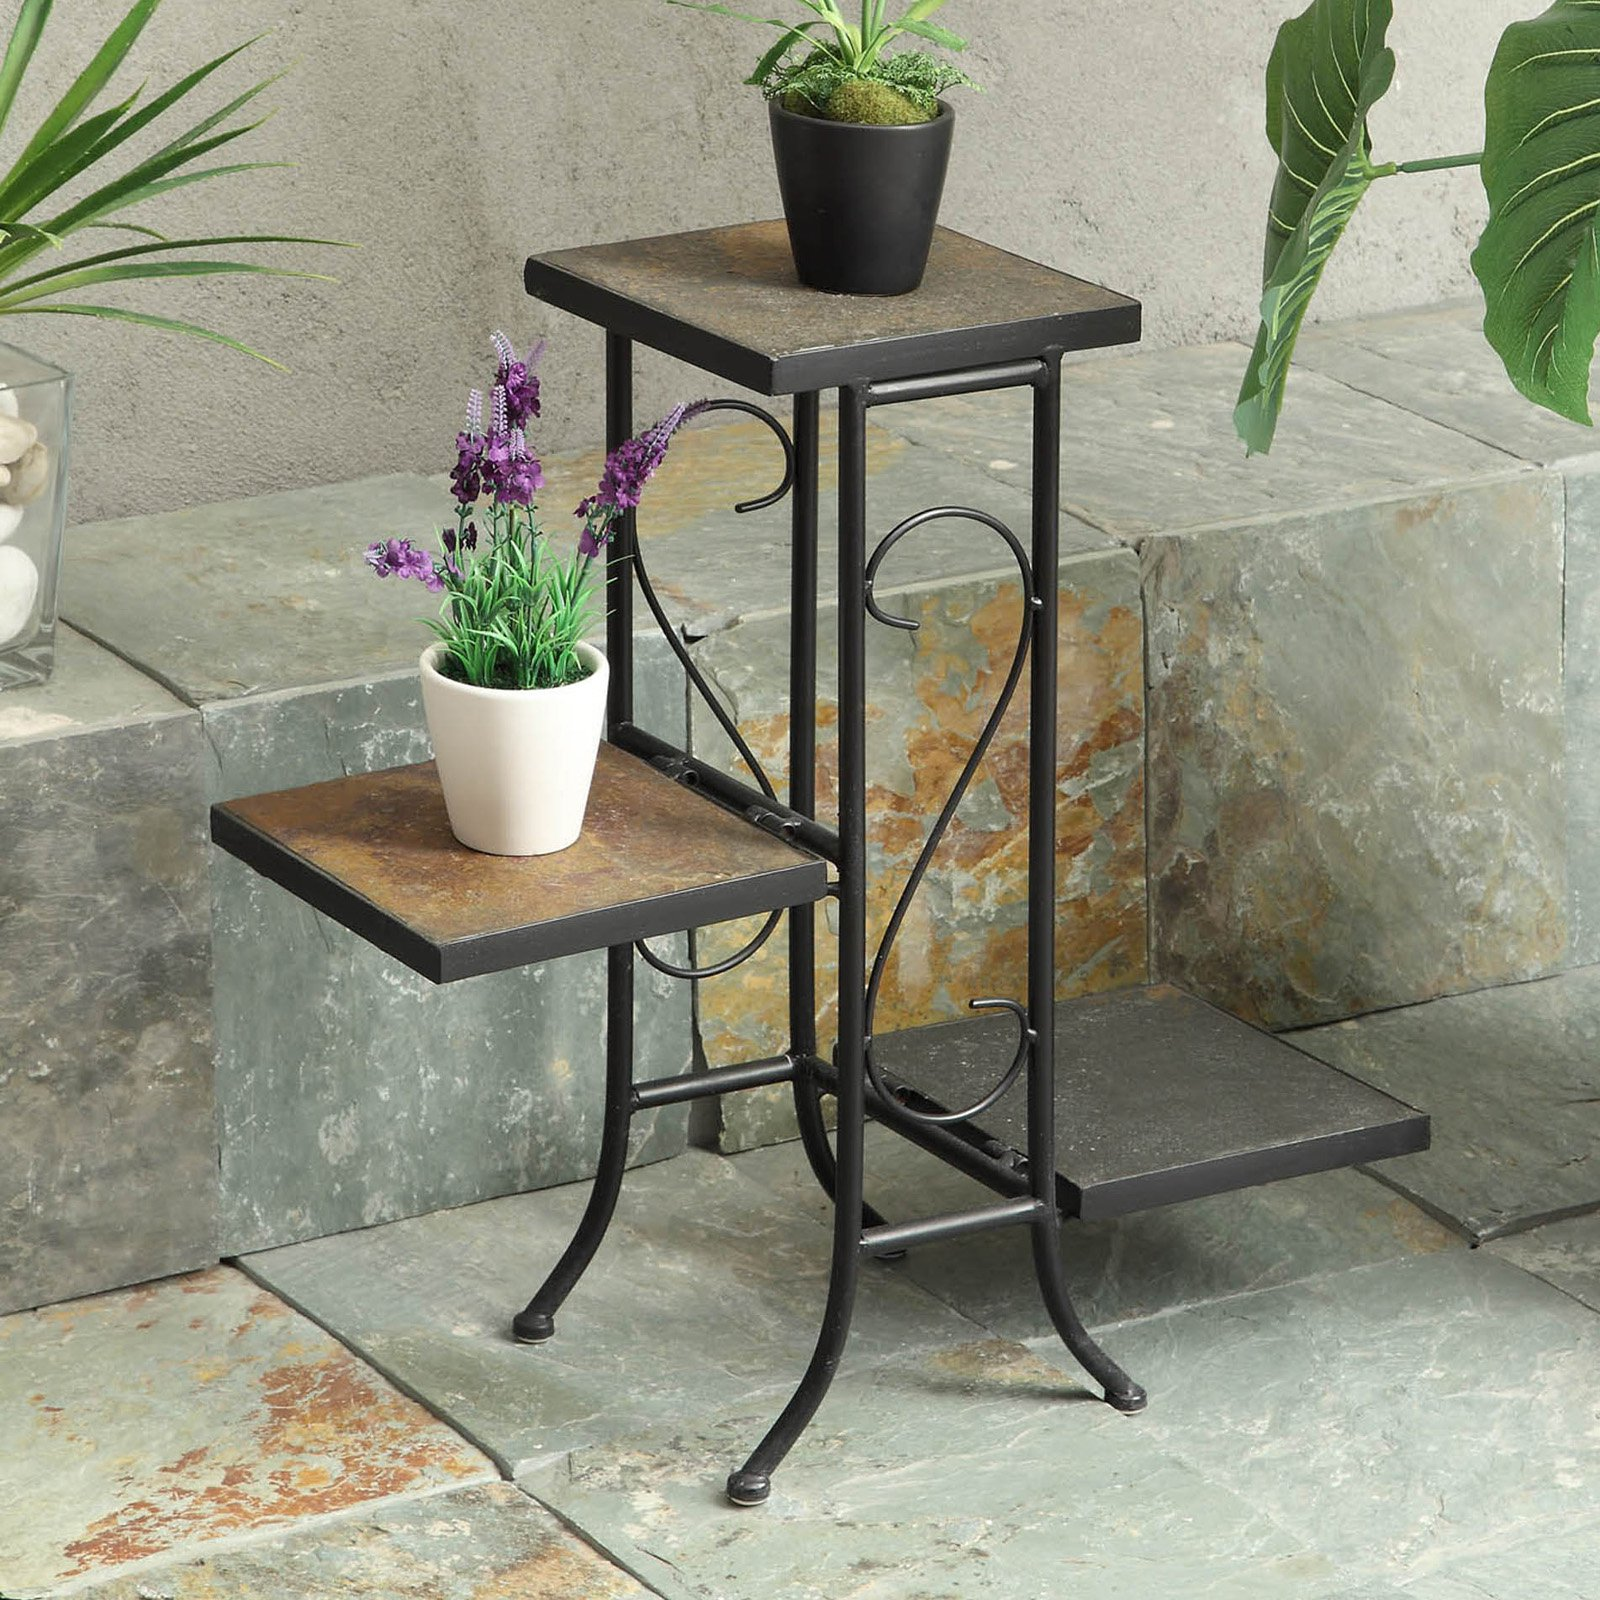 4D Concepts 3 Tier Slate Plant Stand